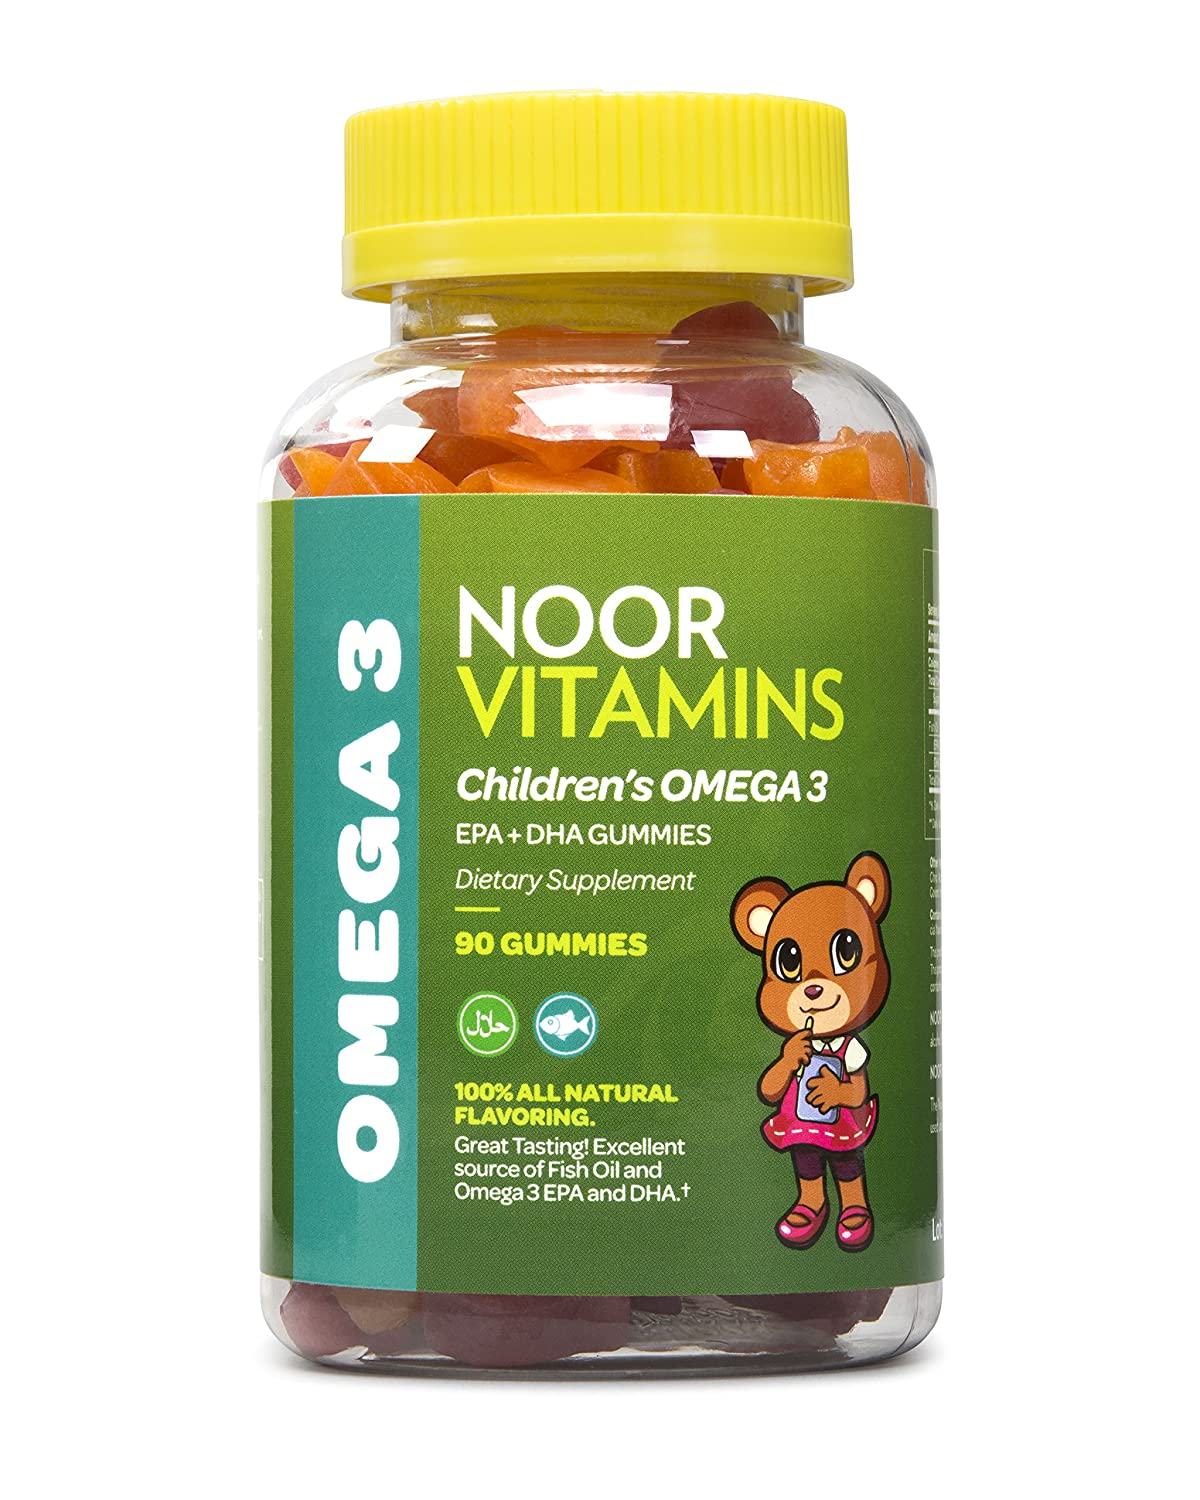 noorvitamins-childrens-omega-3-gummy-vitamin---packed-full-of-epa+dha-to-help-young-brains-develop---90-count-gummies---halal-certified-vitamins-for by noor-vitamins